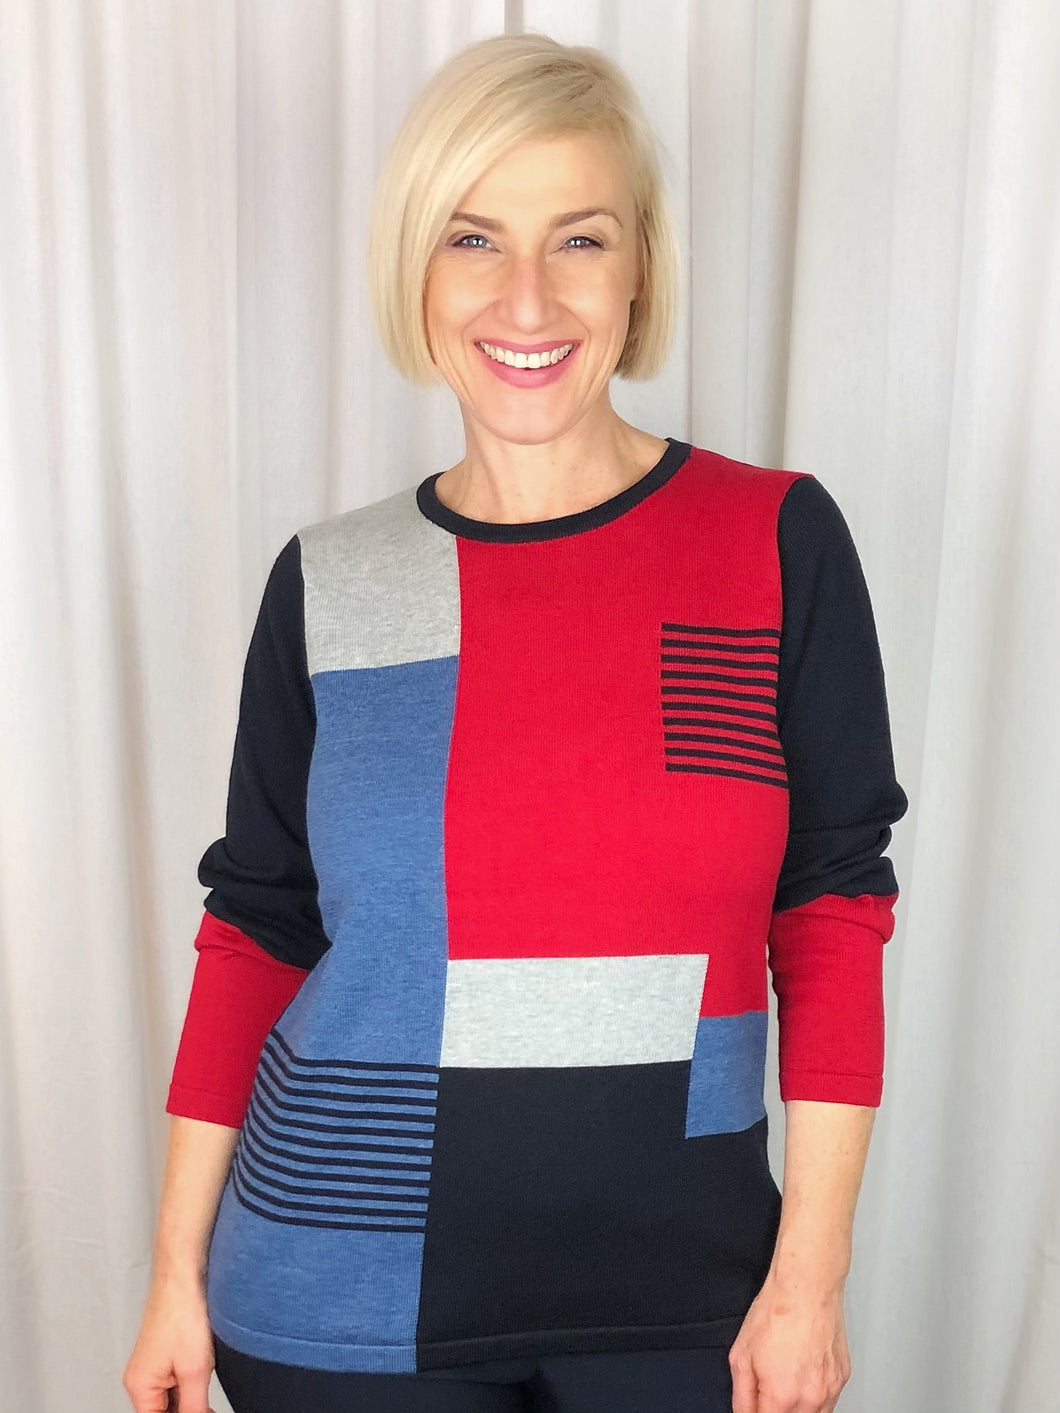 For a fun and up to date look this winter try our fashionable Block Pullover in navy, red, denim and grey tones. Made from a blend of Cotton and Acrylic, it's lightweight, warm and fully washable.